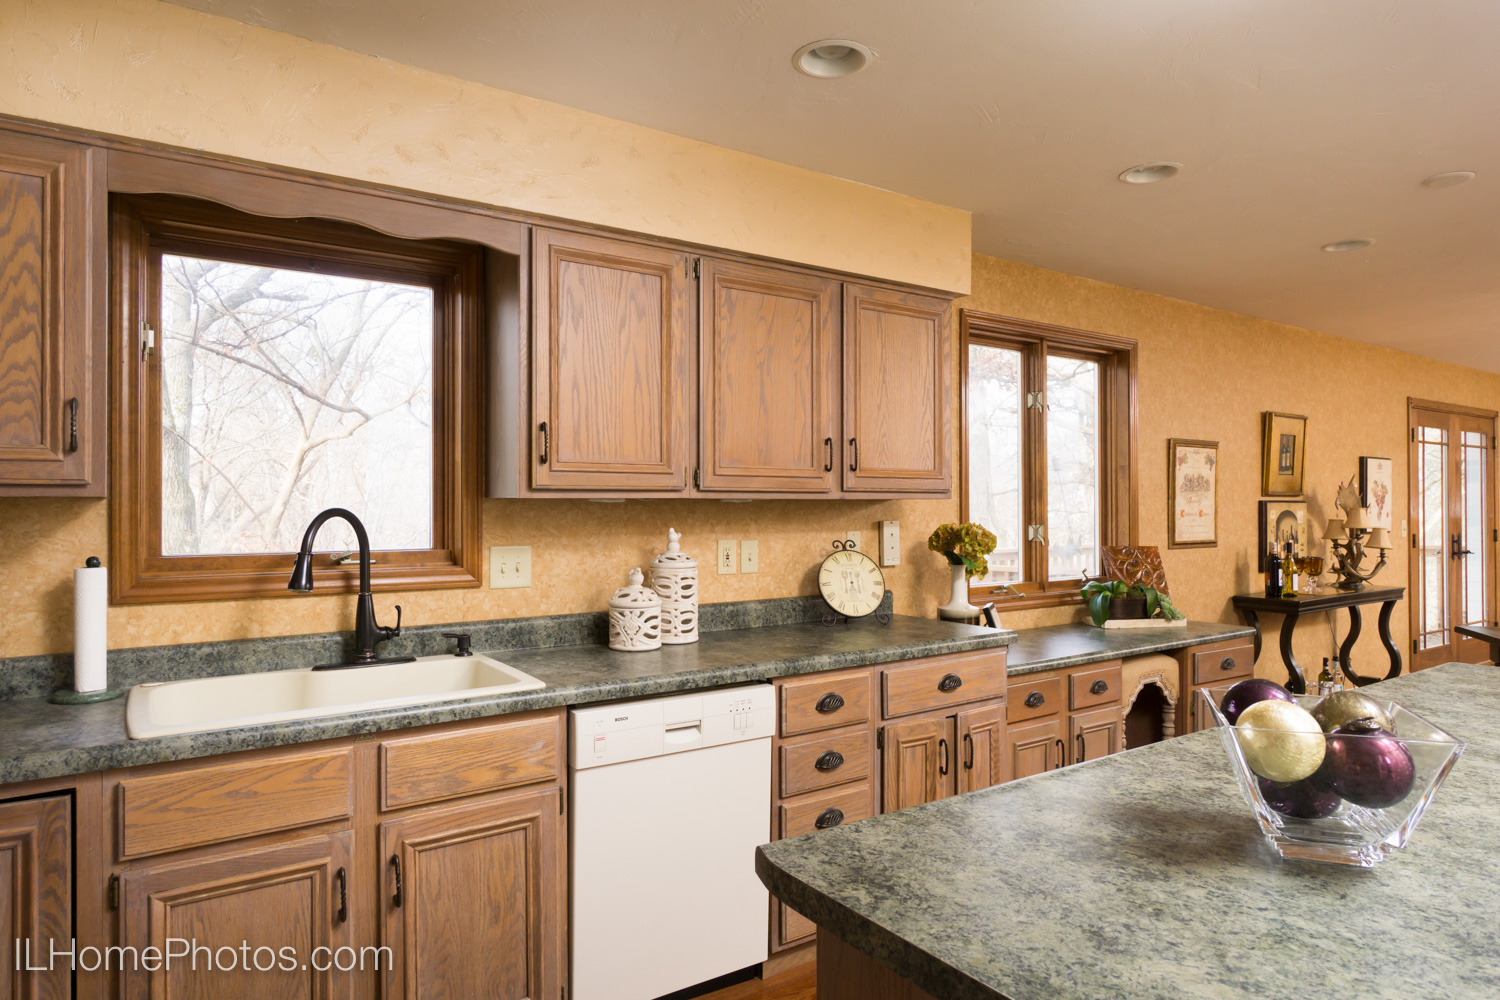 Interior kitchen photograph for real estate in Dunlap, IL :: Illinois Home Photography by Michael Gowin, Lincoln, IL